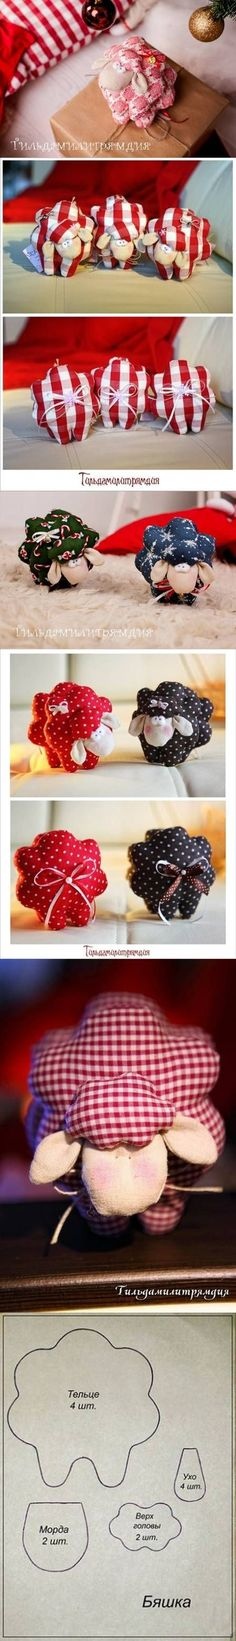 DIY Cute Fabric Lamb DIY Projects / UsefulDIY.com on imgfave